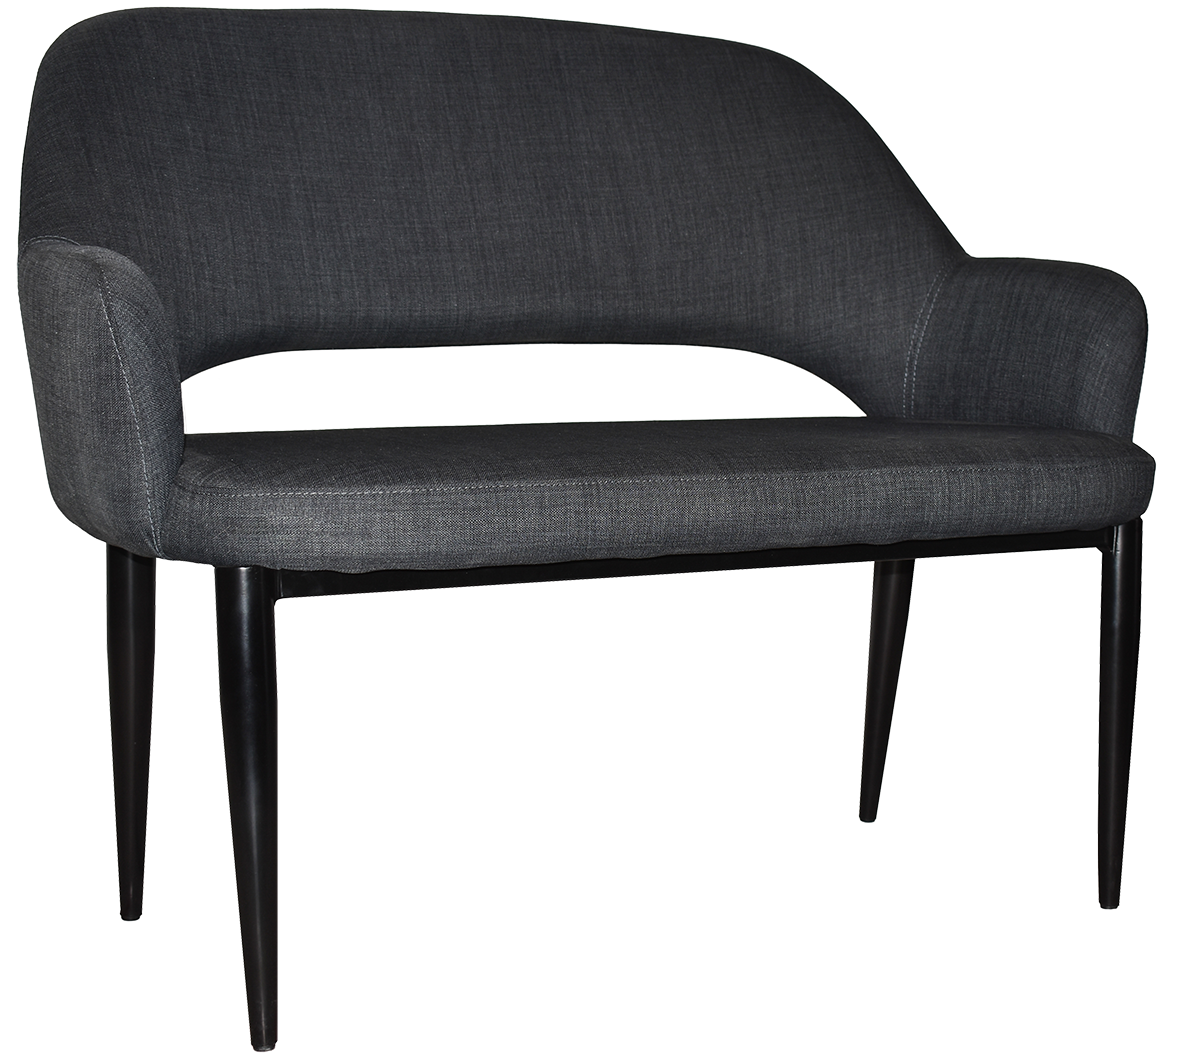 LOUNGE ALBURY 2 SEATER + FABRIC CHARCOAL